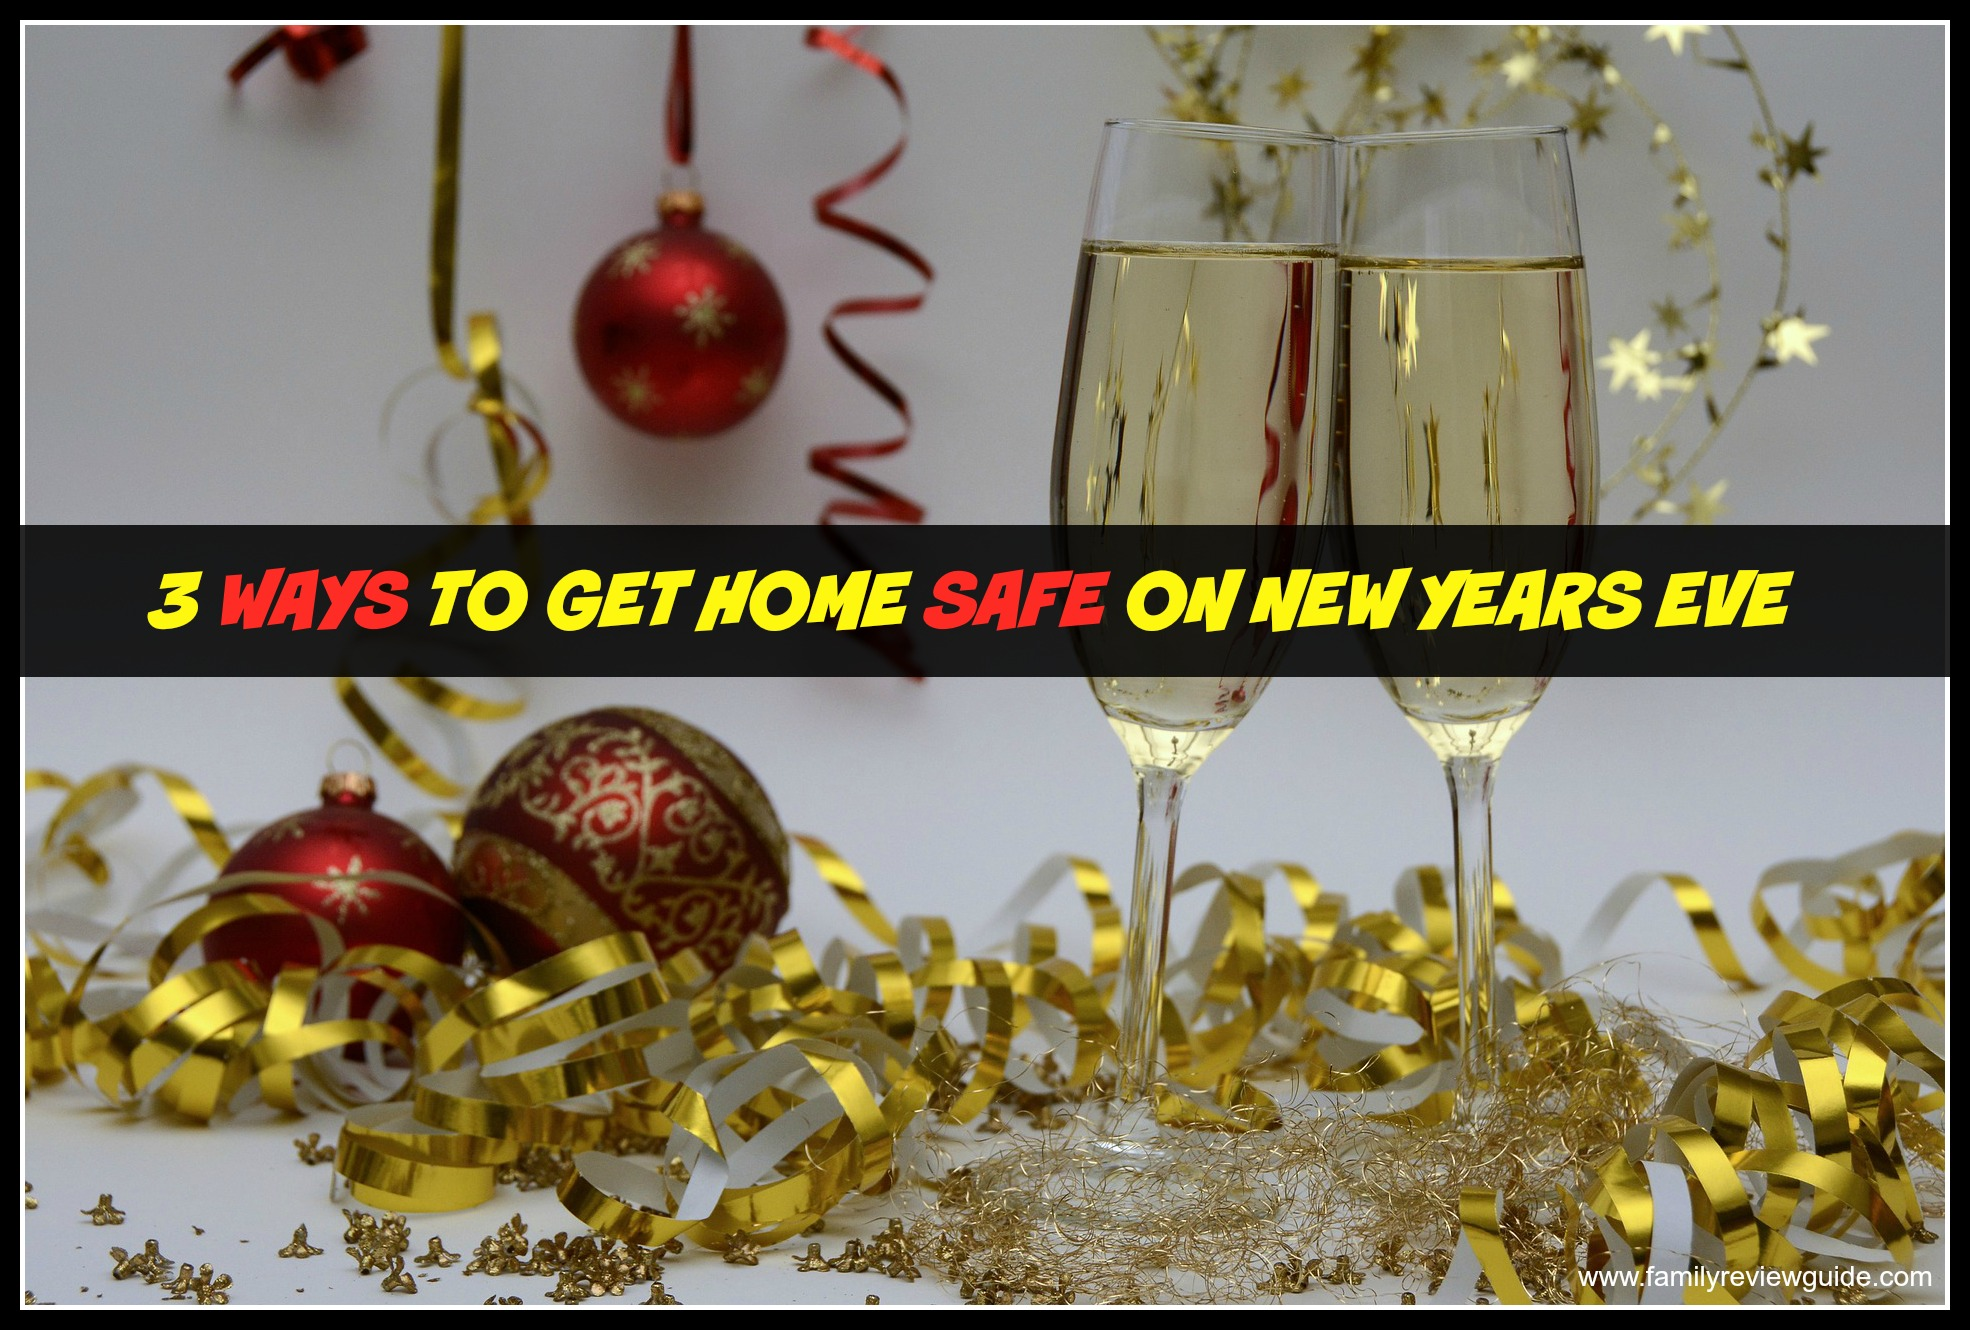 3 Ways To Get Home Safe This New Years Eve